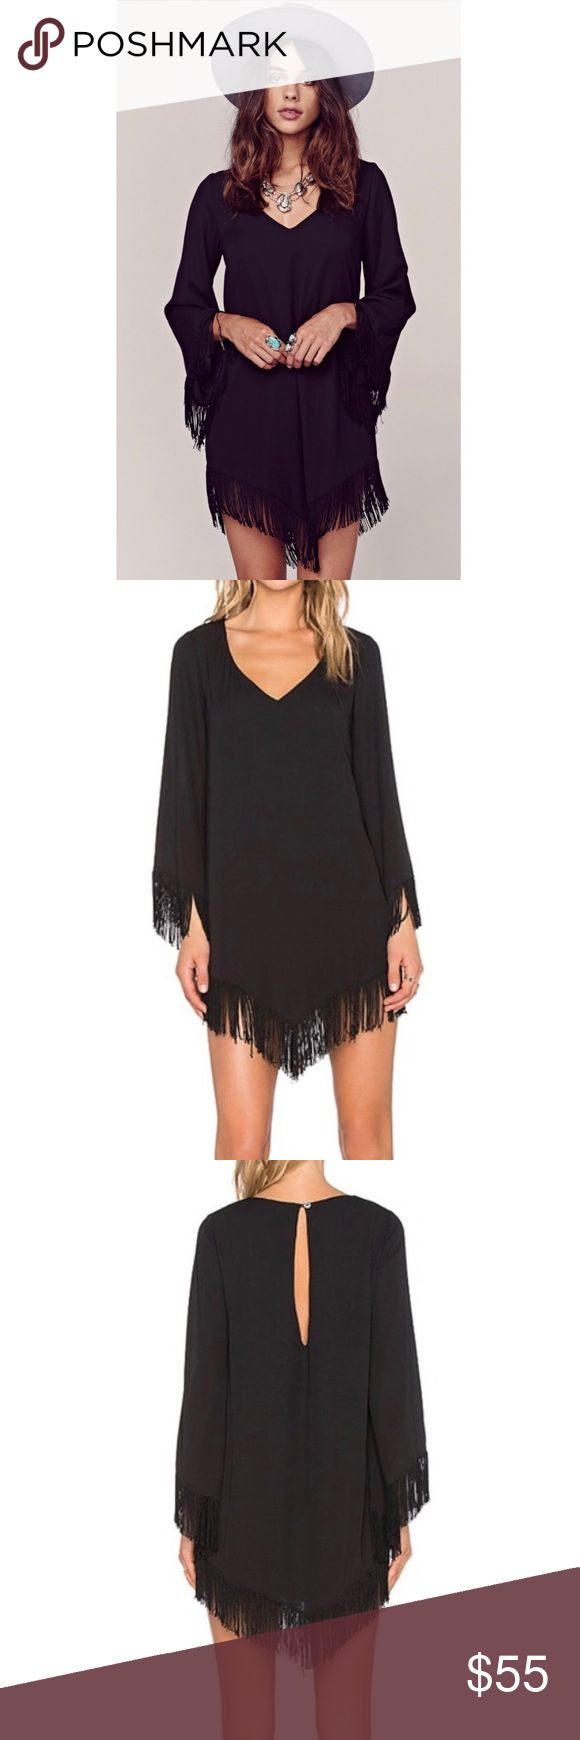 Show Me Your Mumu Rodeo Dress NWT ✨ Rodeo Dress in Black Crisp.  The cutest fringe dress. Hemline and long sleeves all have super fun fringe!  Fully lined, with V neckline and a little keyhole on back. Show Me Your MuMu Dresses Long Sleeve